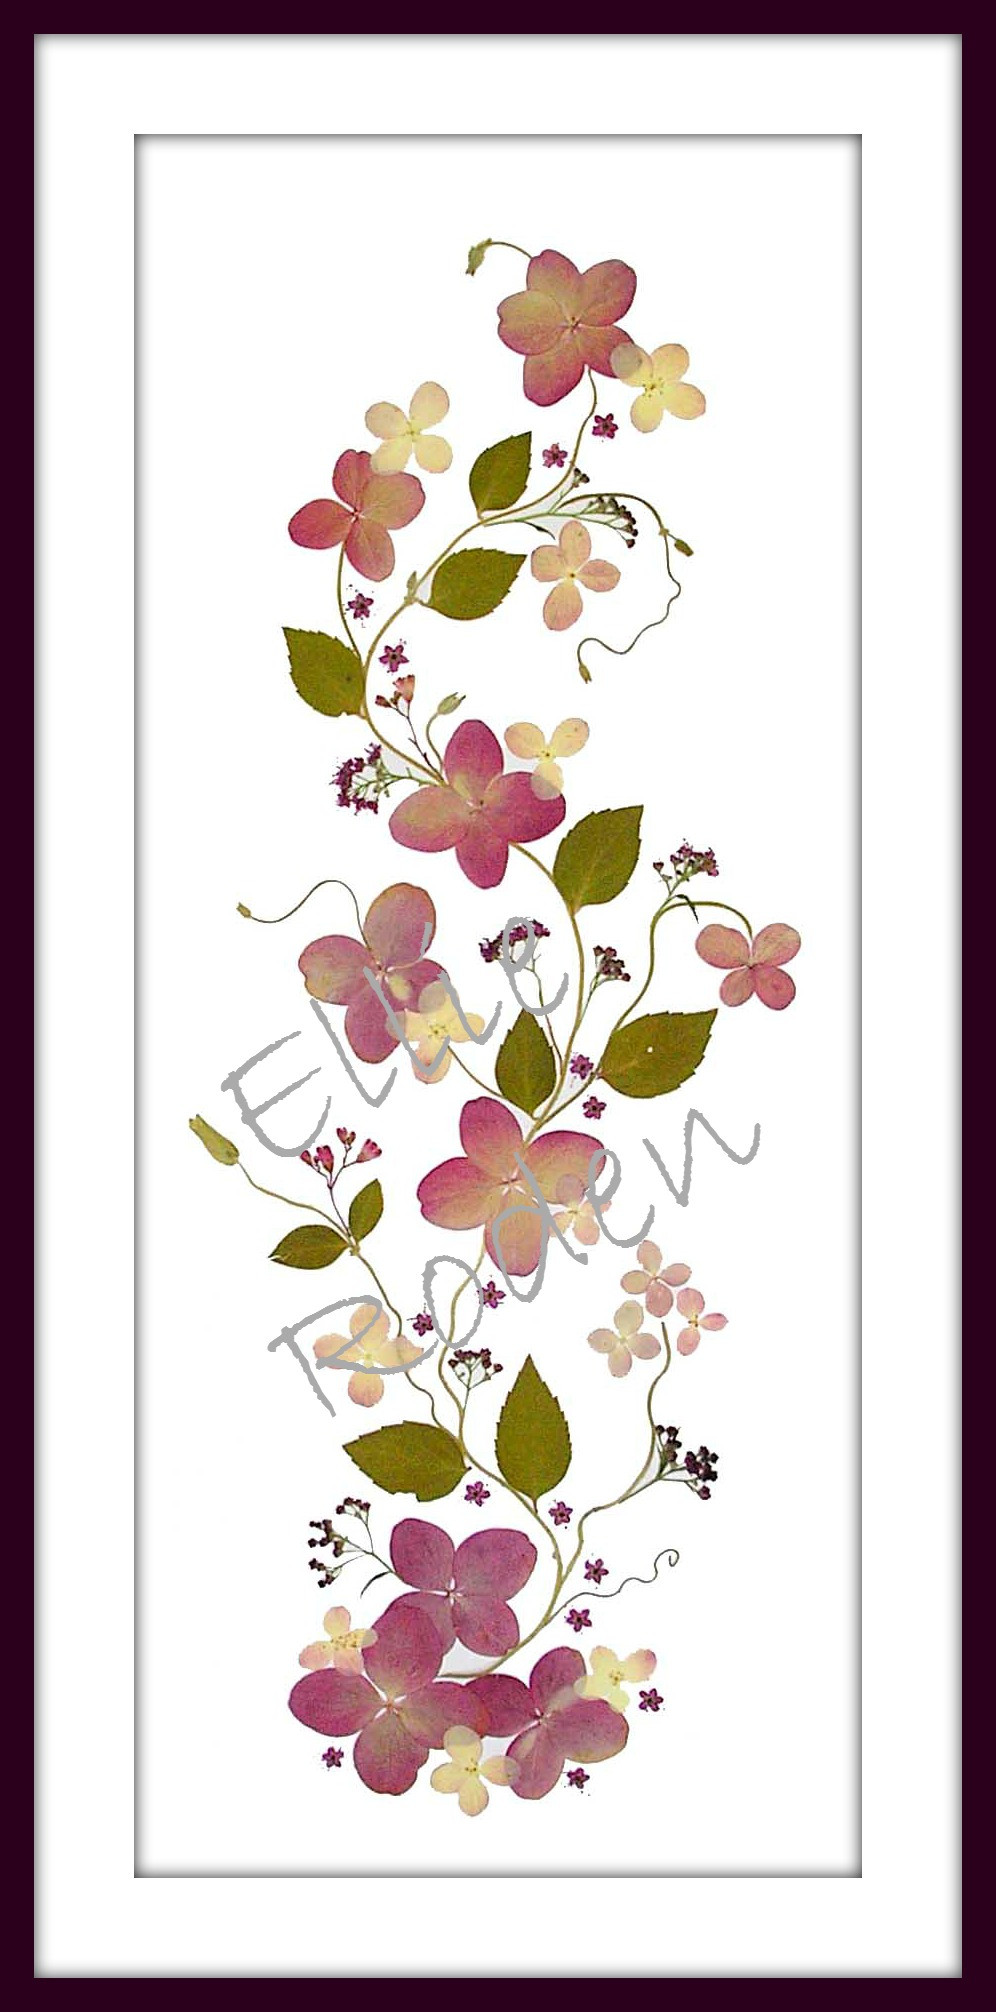 Original presser flower print from Ellie Roden